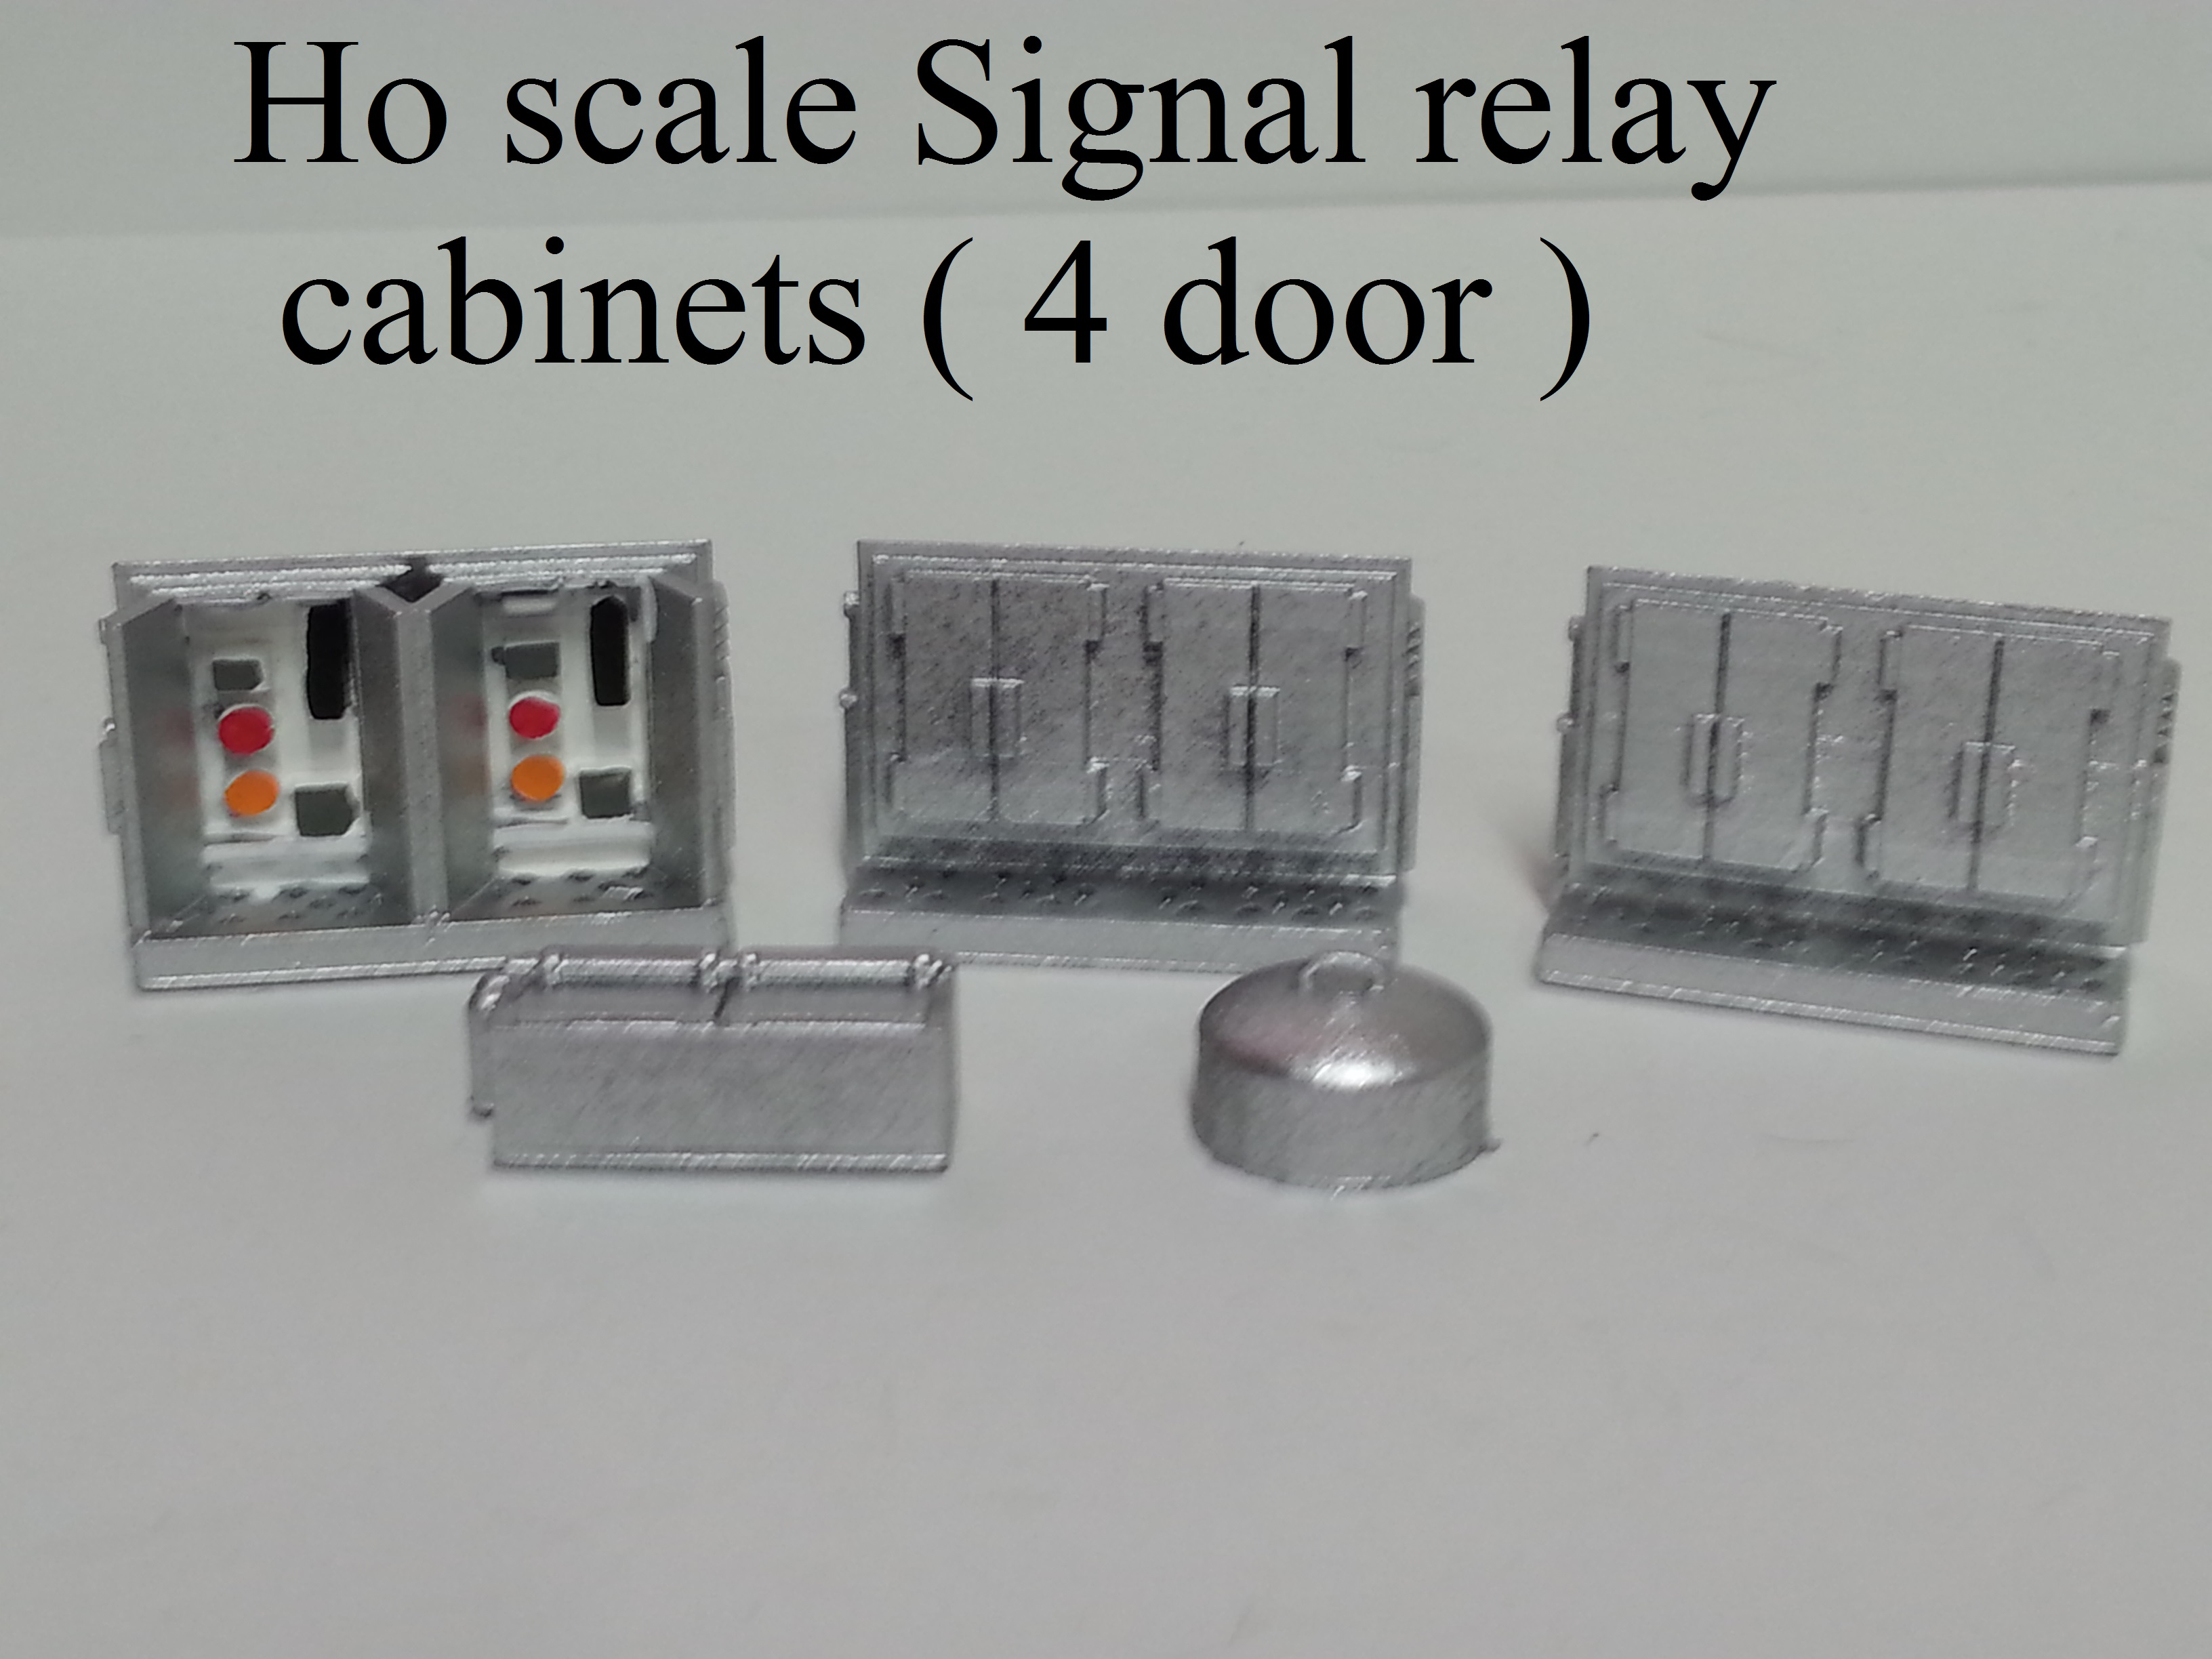 Ho scale Signal relay cabinets ( 4 door )